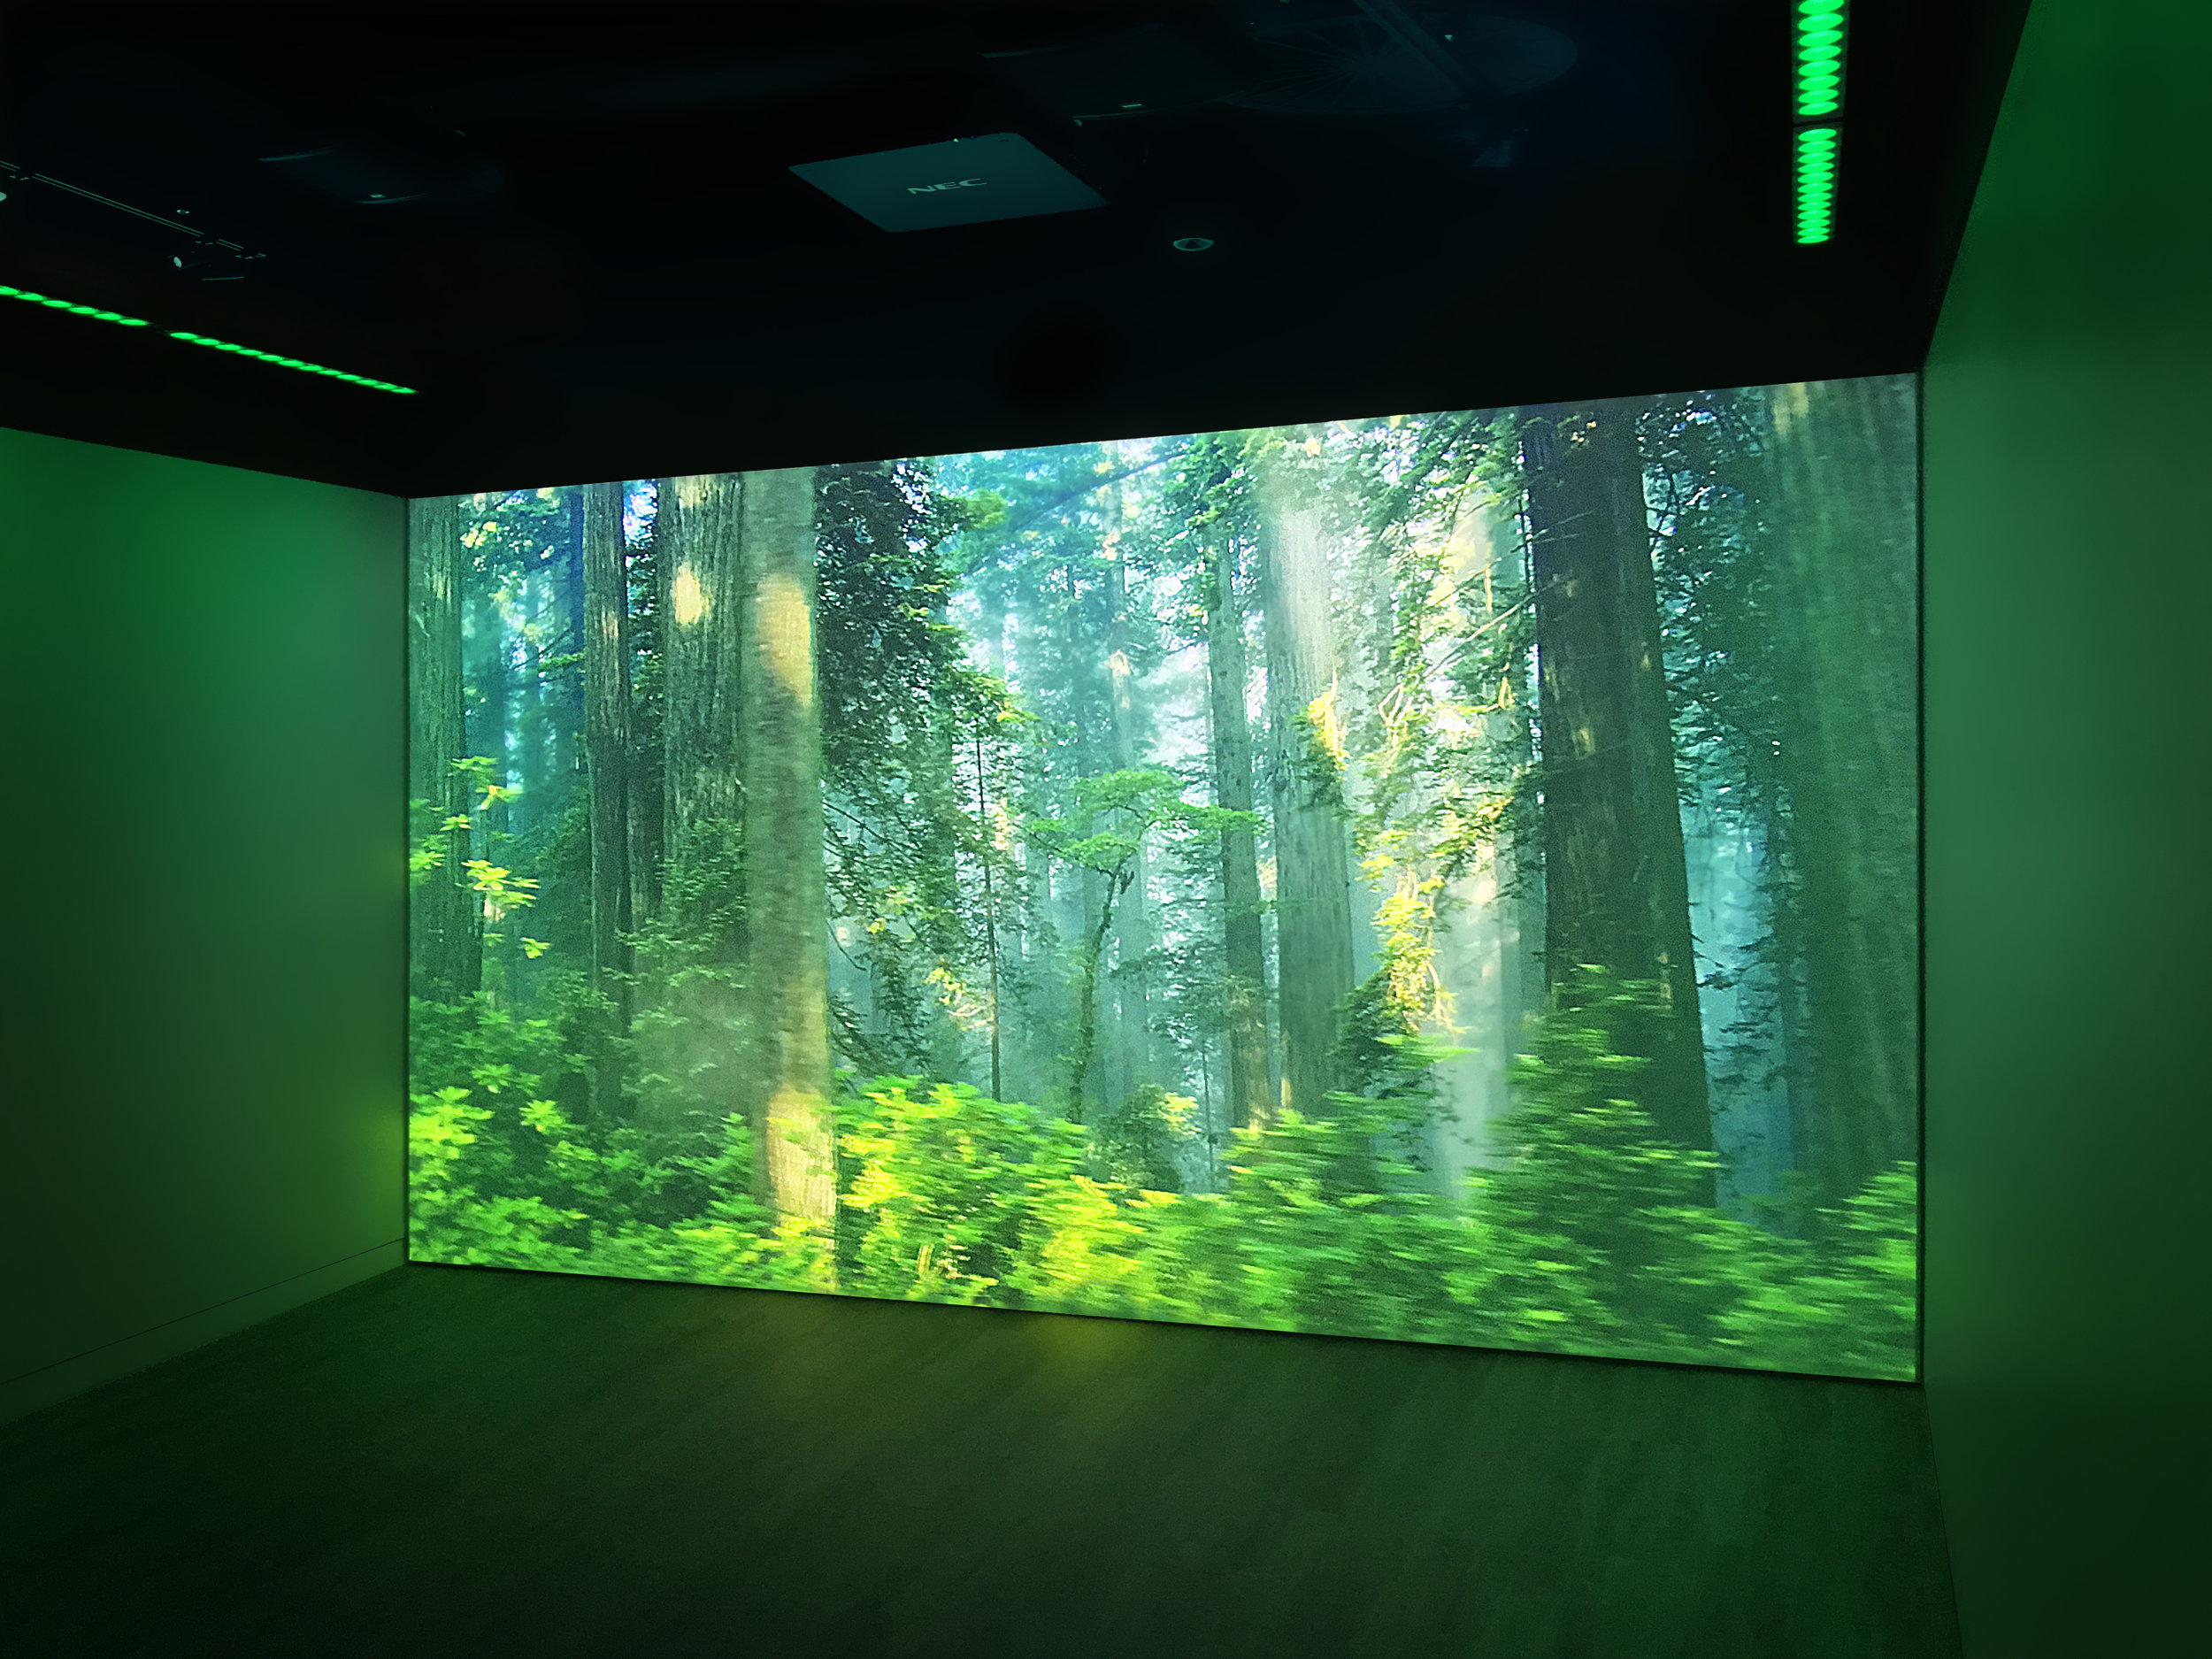 The immense projected image on one wall of the square space is extended with LED colour along the other three walls to create an immersive feeling.